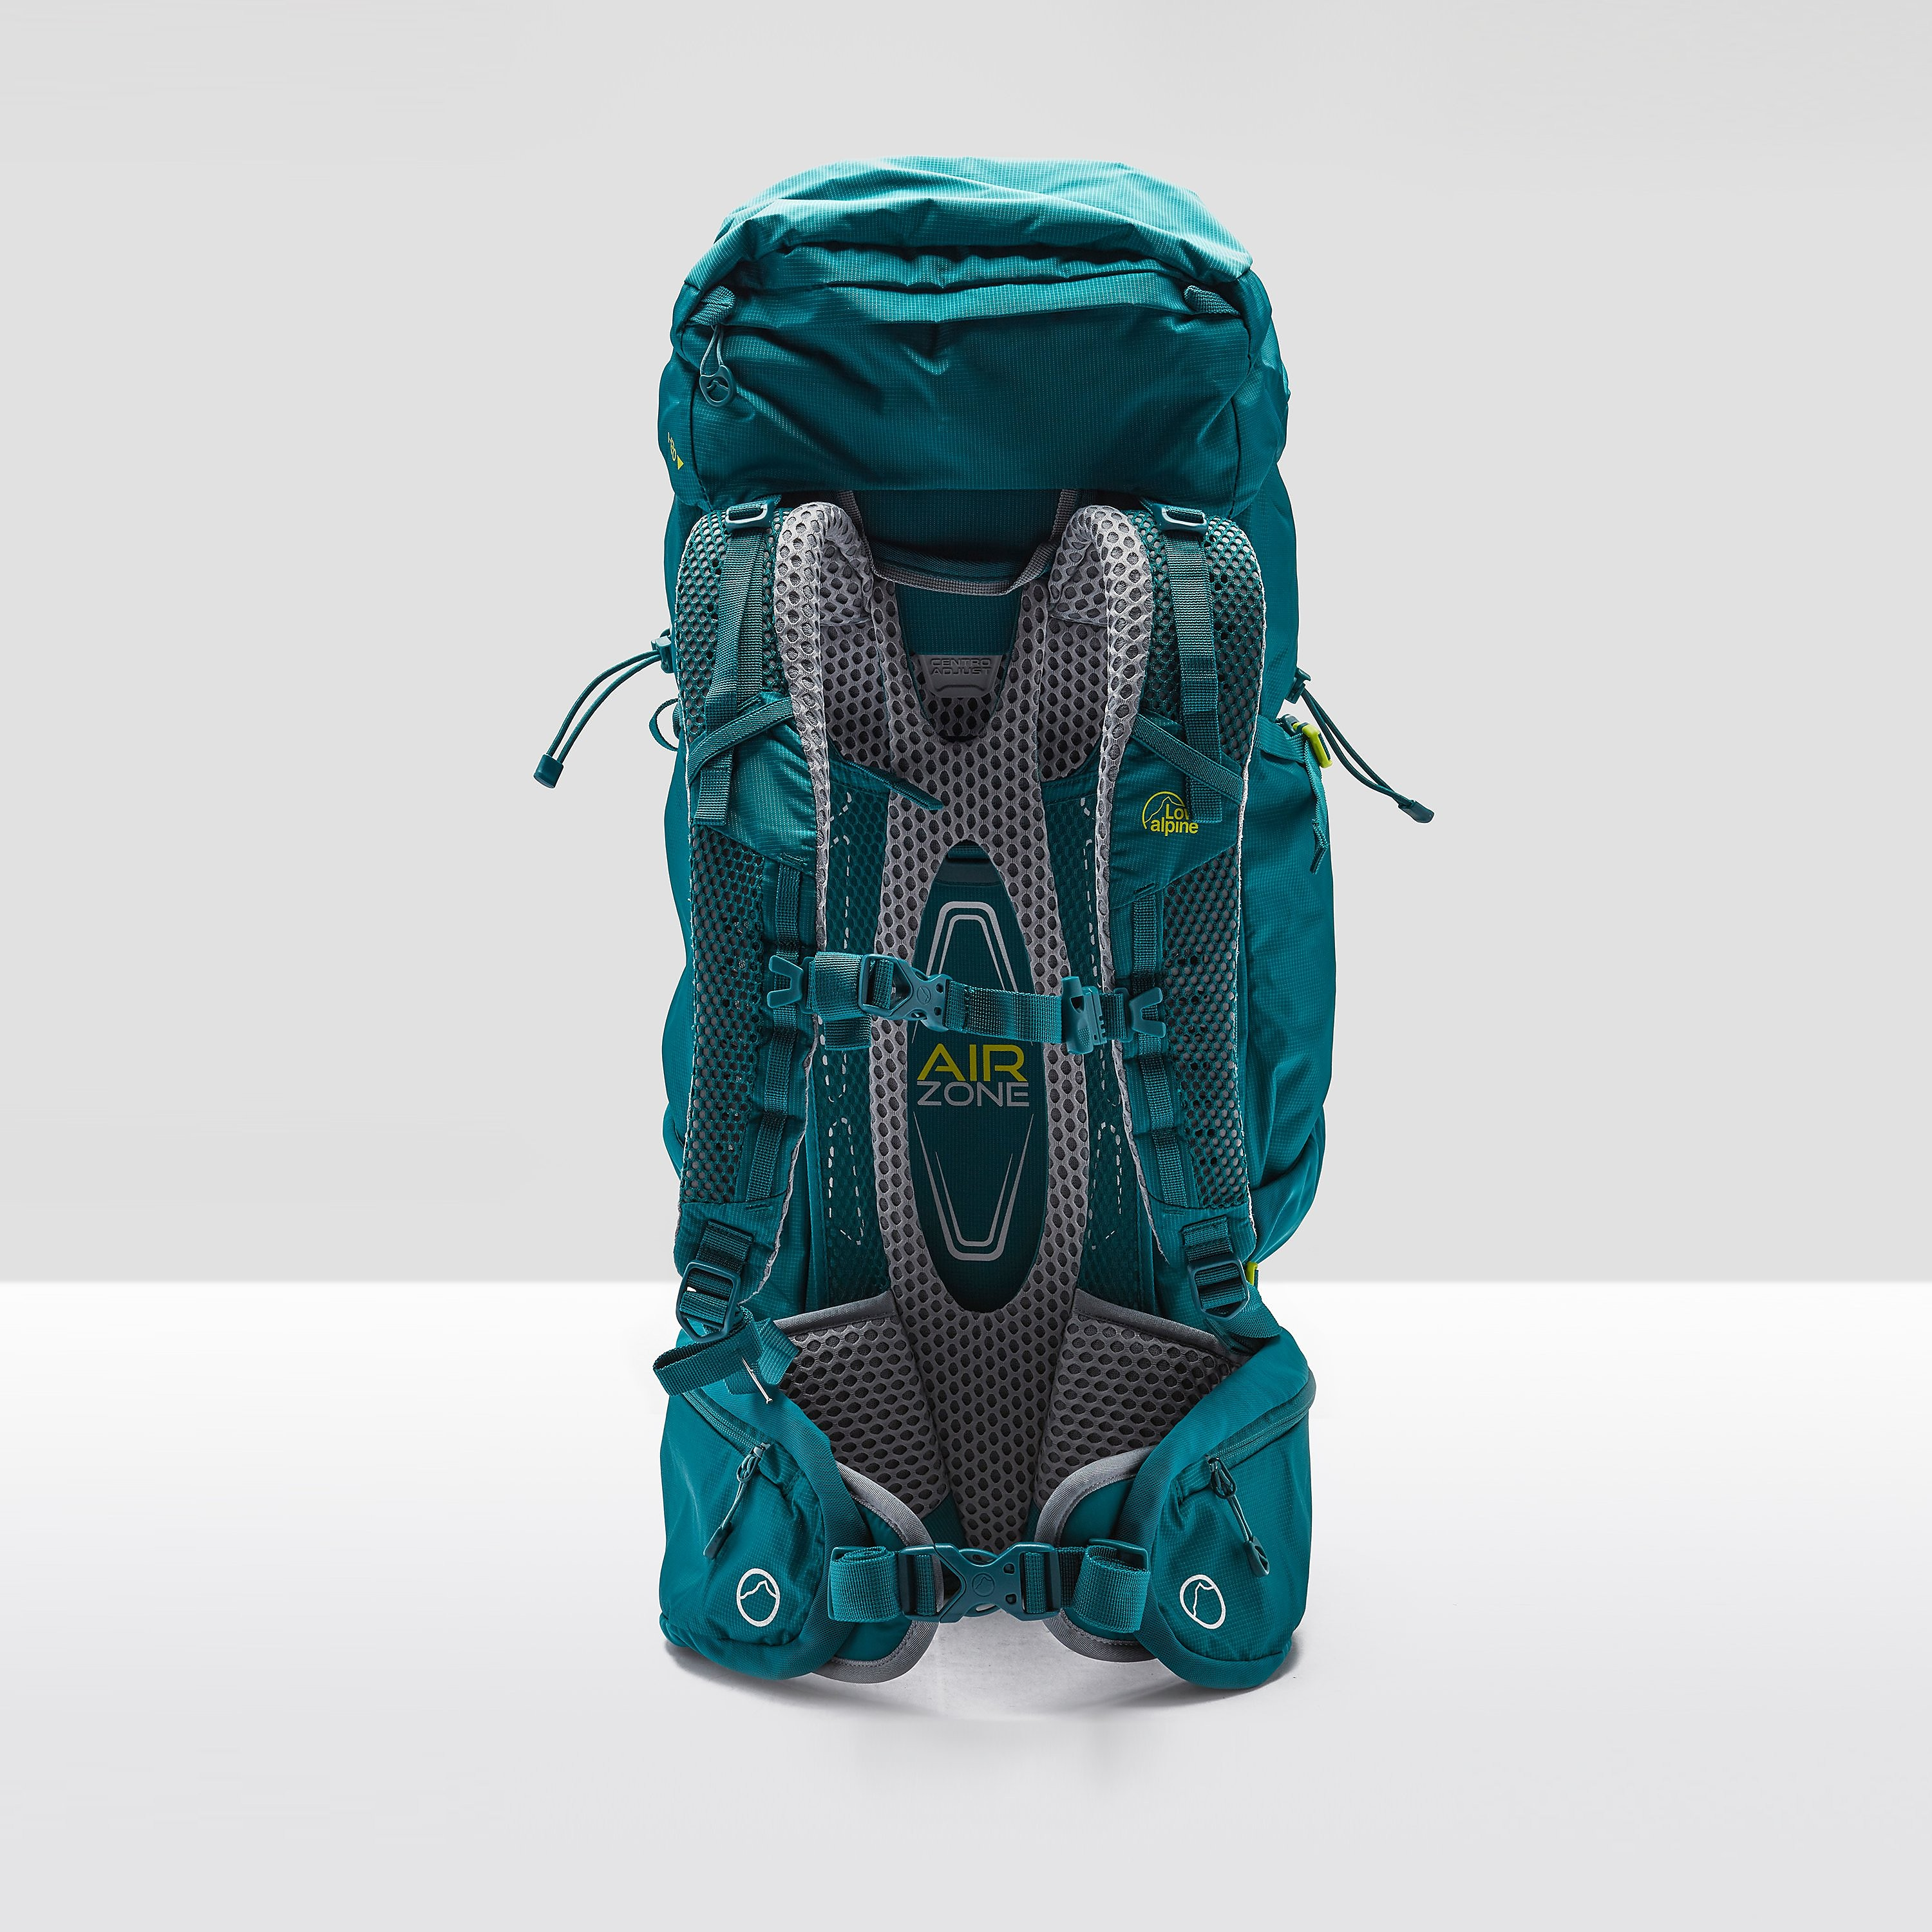 Lowe Alpine Airzone Pro 40:55 Backpack